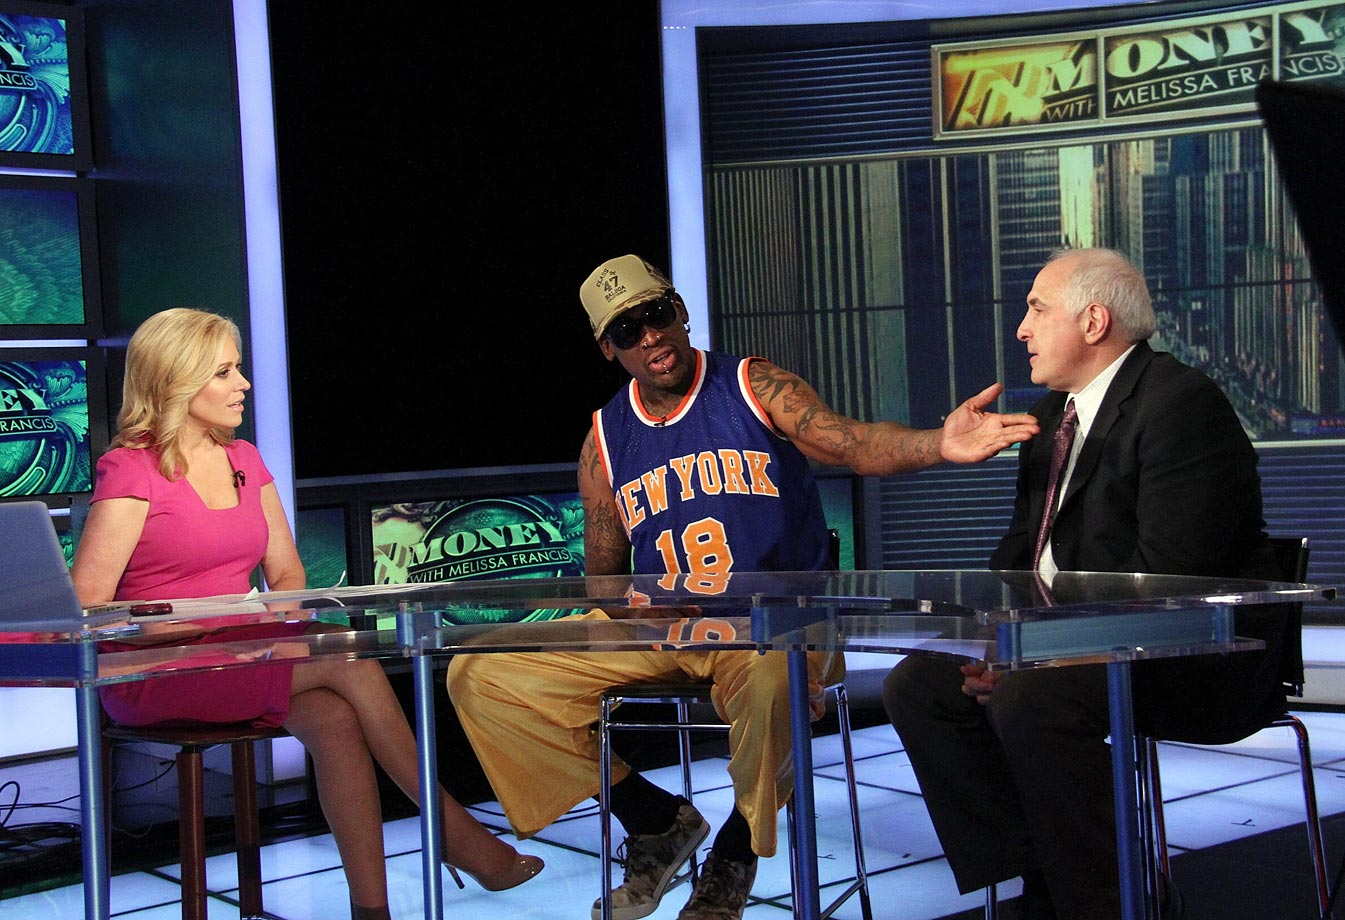 Rodman dressed a tad more appropriately while appearing on The Fox Business Network alongside Melissa Francis and Brandon Steiner in 2014.